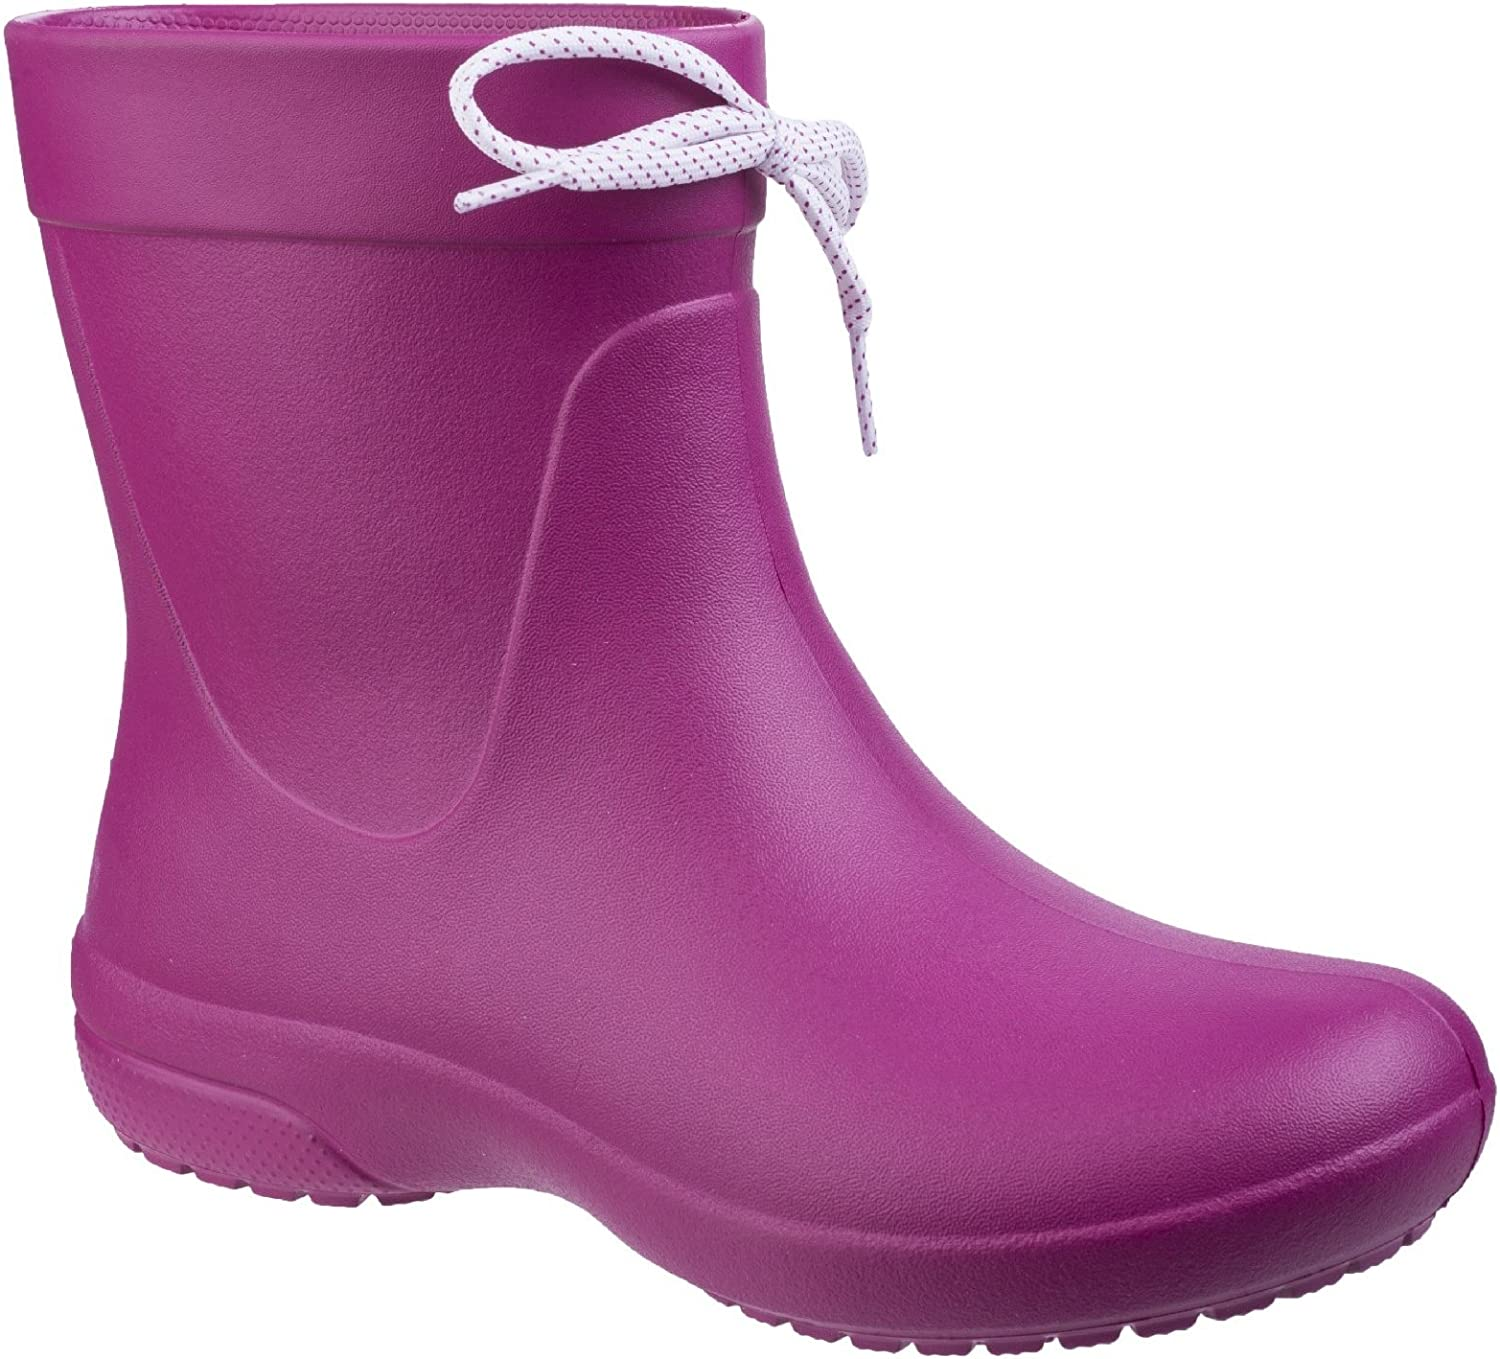 Crocs Womens Ladies Freesail Shorty Rain Boots (5 UK, Berry)